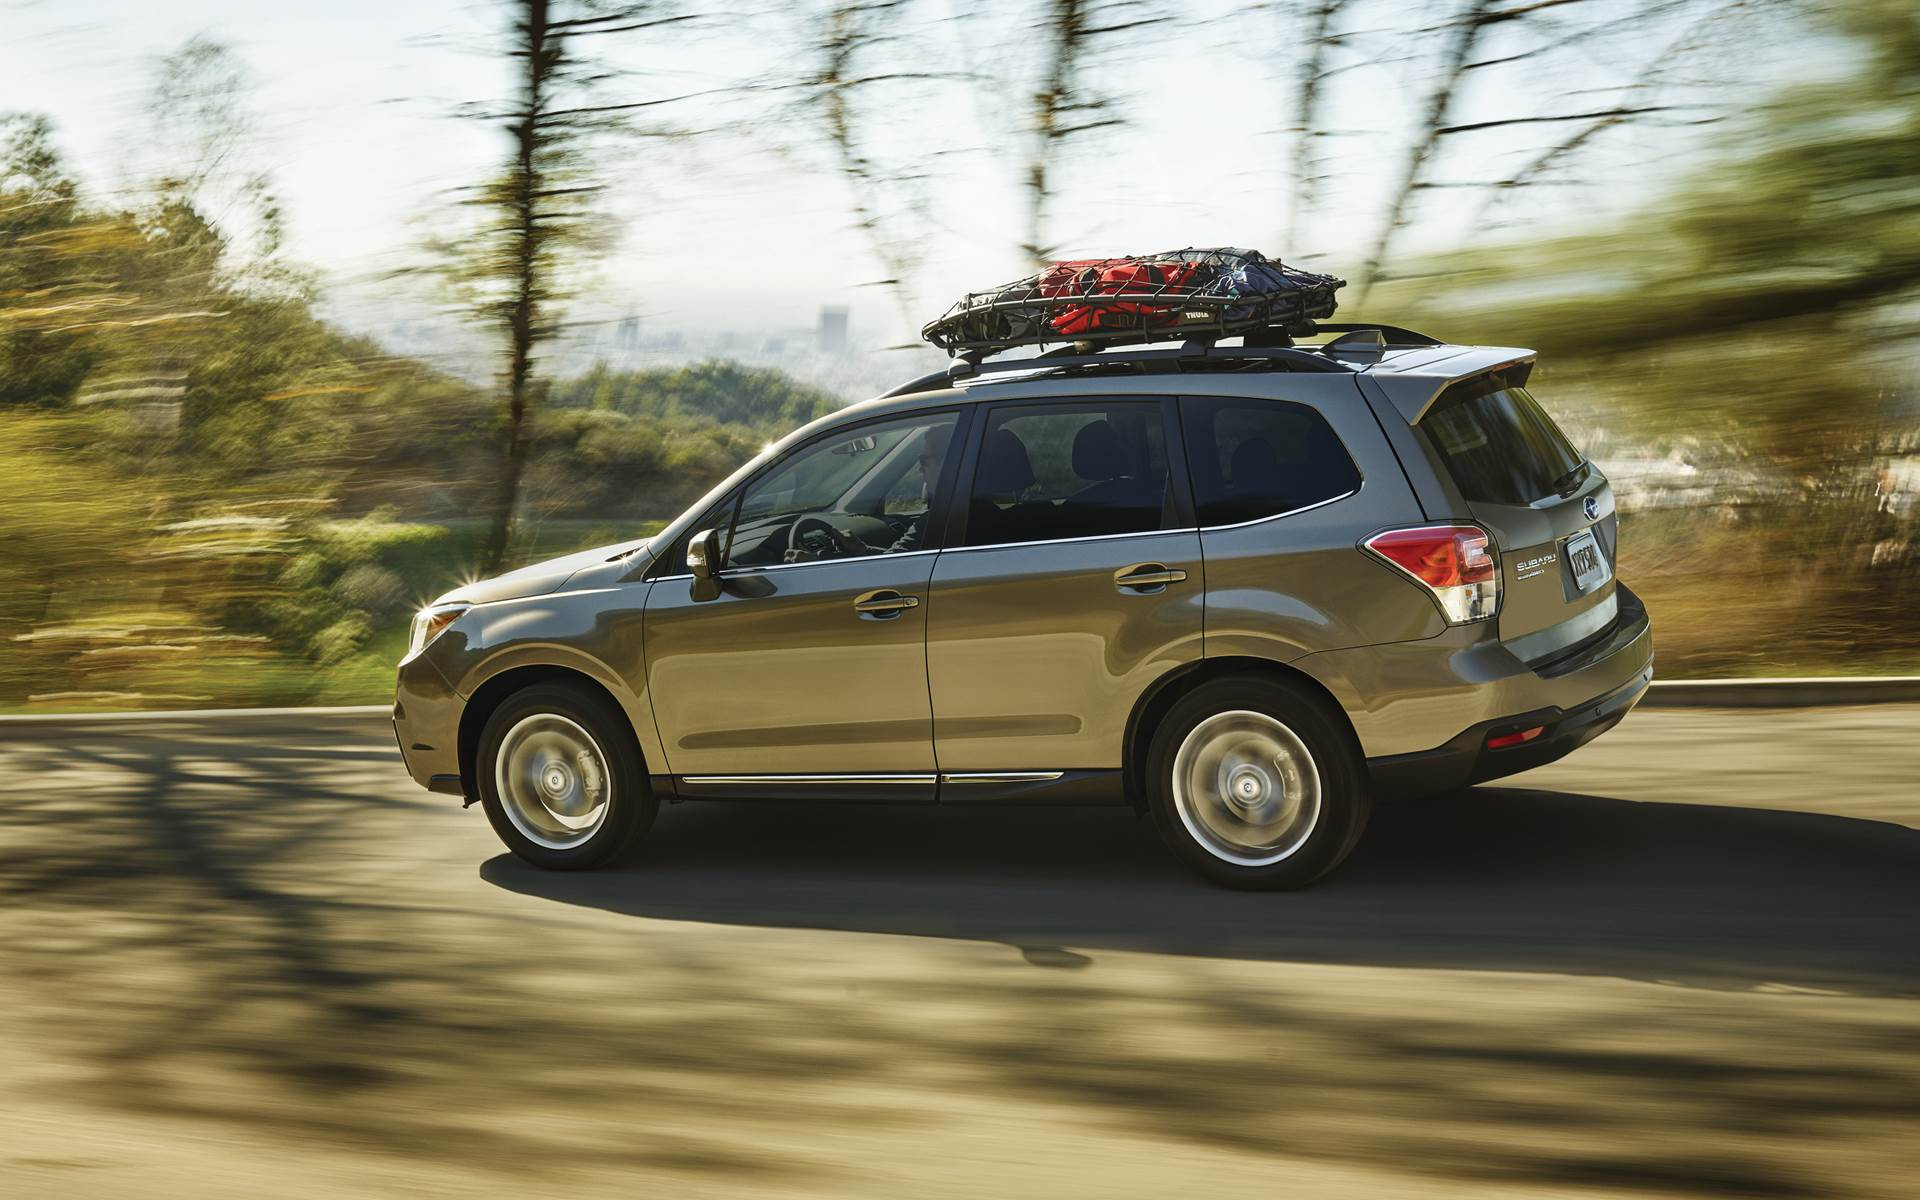 2018 Subaru Forester Sepia Bronze Exterior Side View Driving